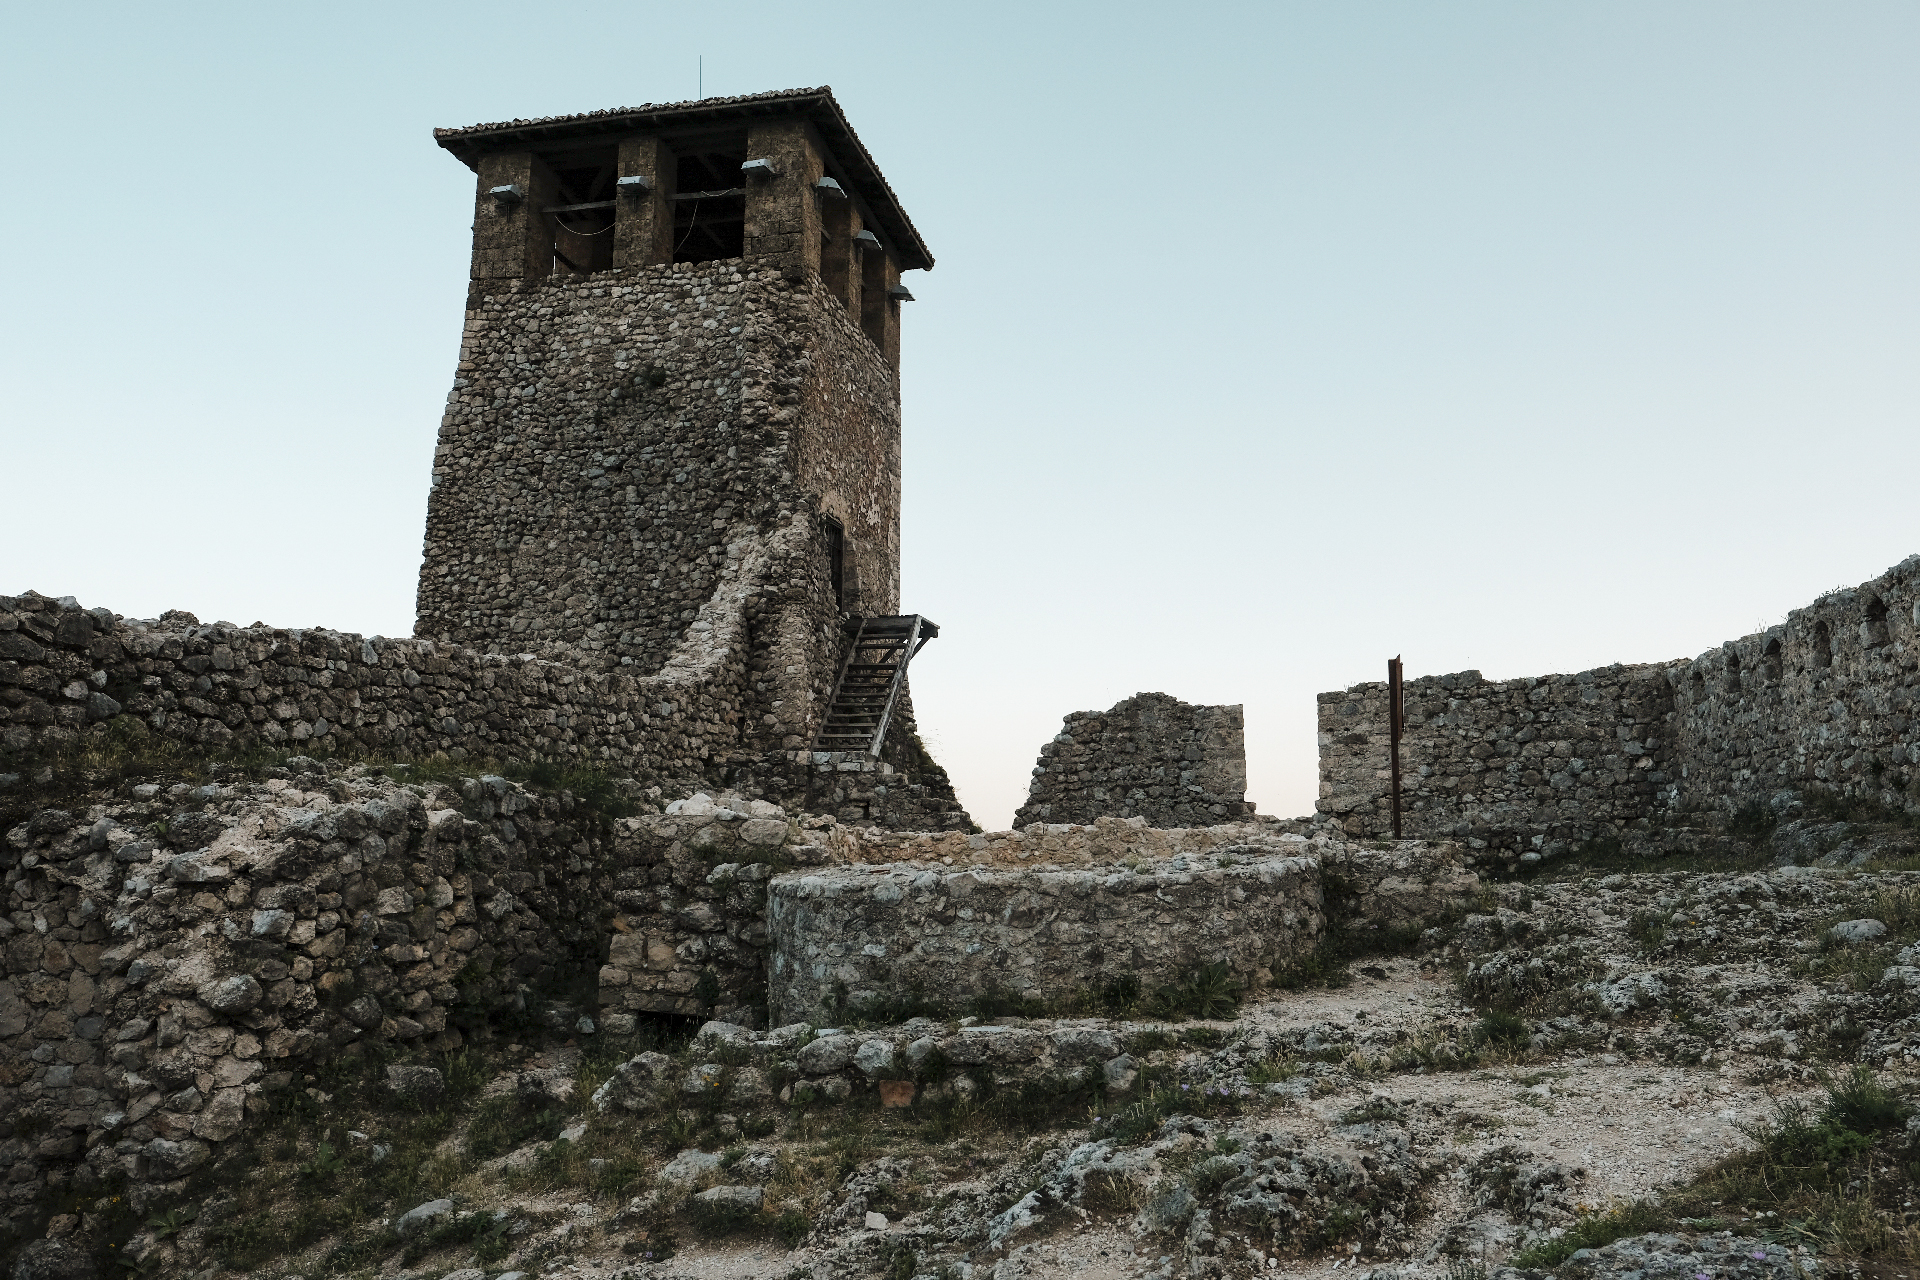 Tower Of the Castle of Krujë